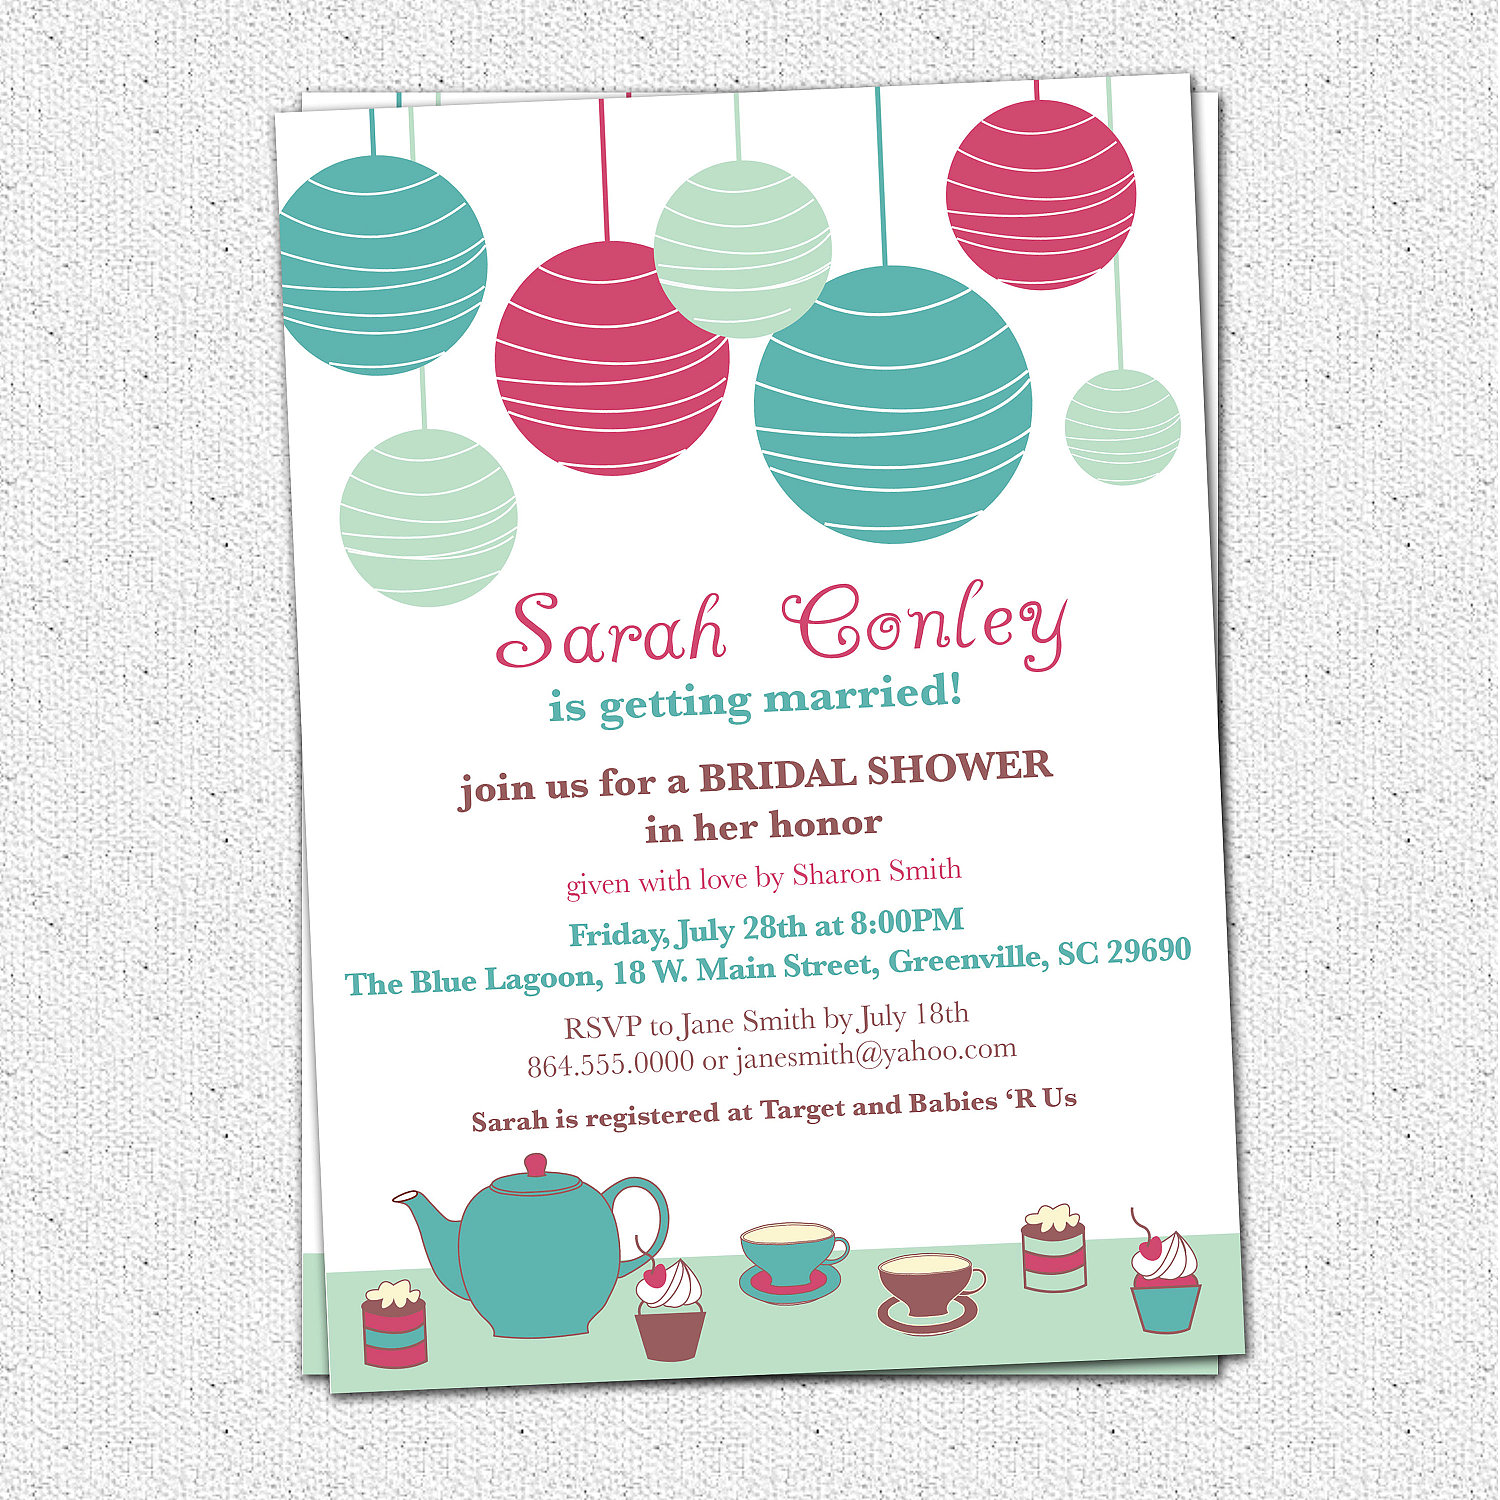 Bridal Shower Invitations Tea Brunch Lanterns Cupcakes Custom